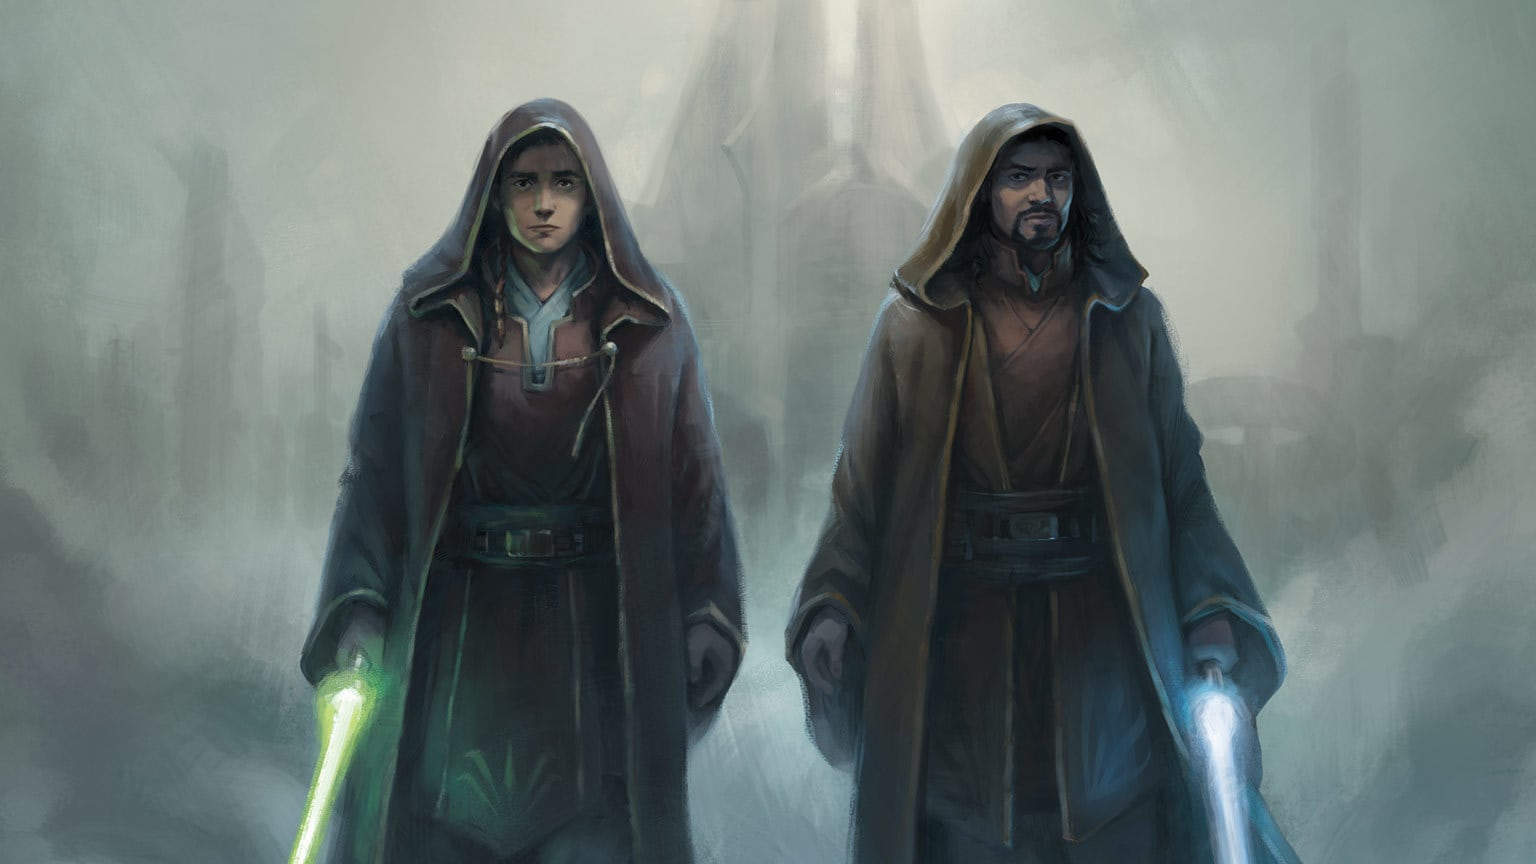 The Fallen Star and Other Book Covers Revealed on the Star Wars: The High Republic Show